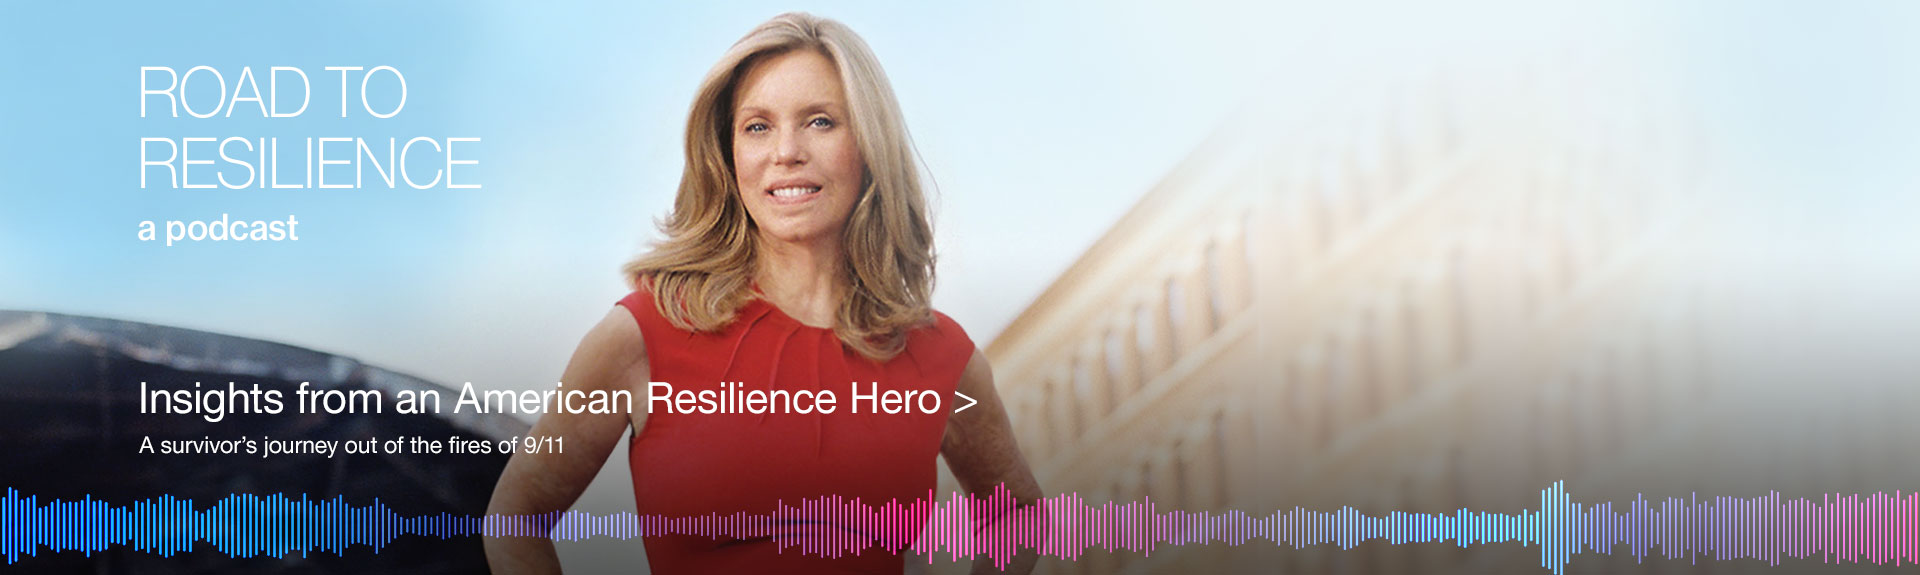 Insights from an American Resilience Hero